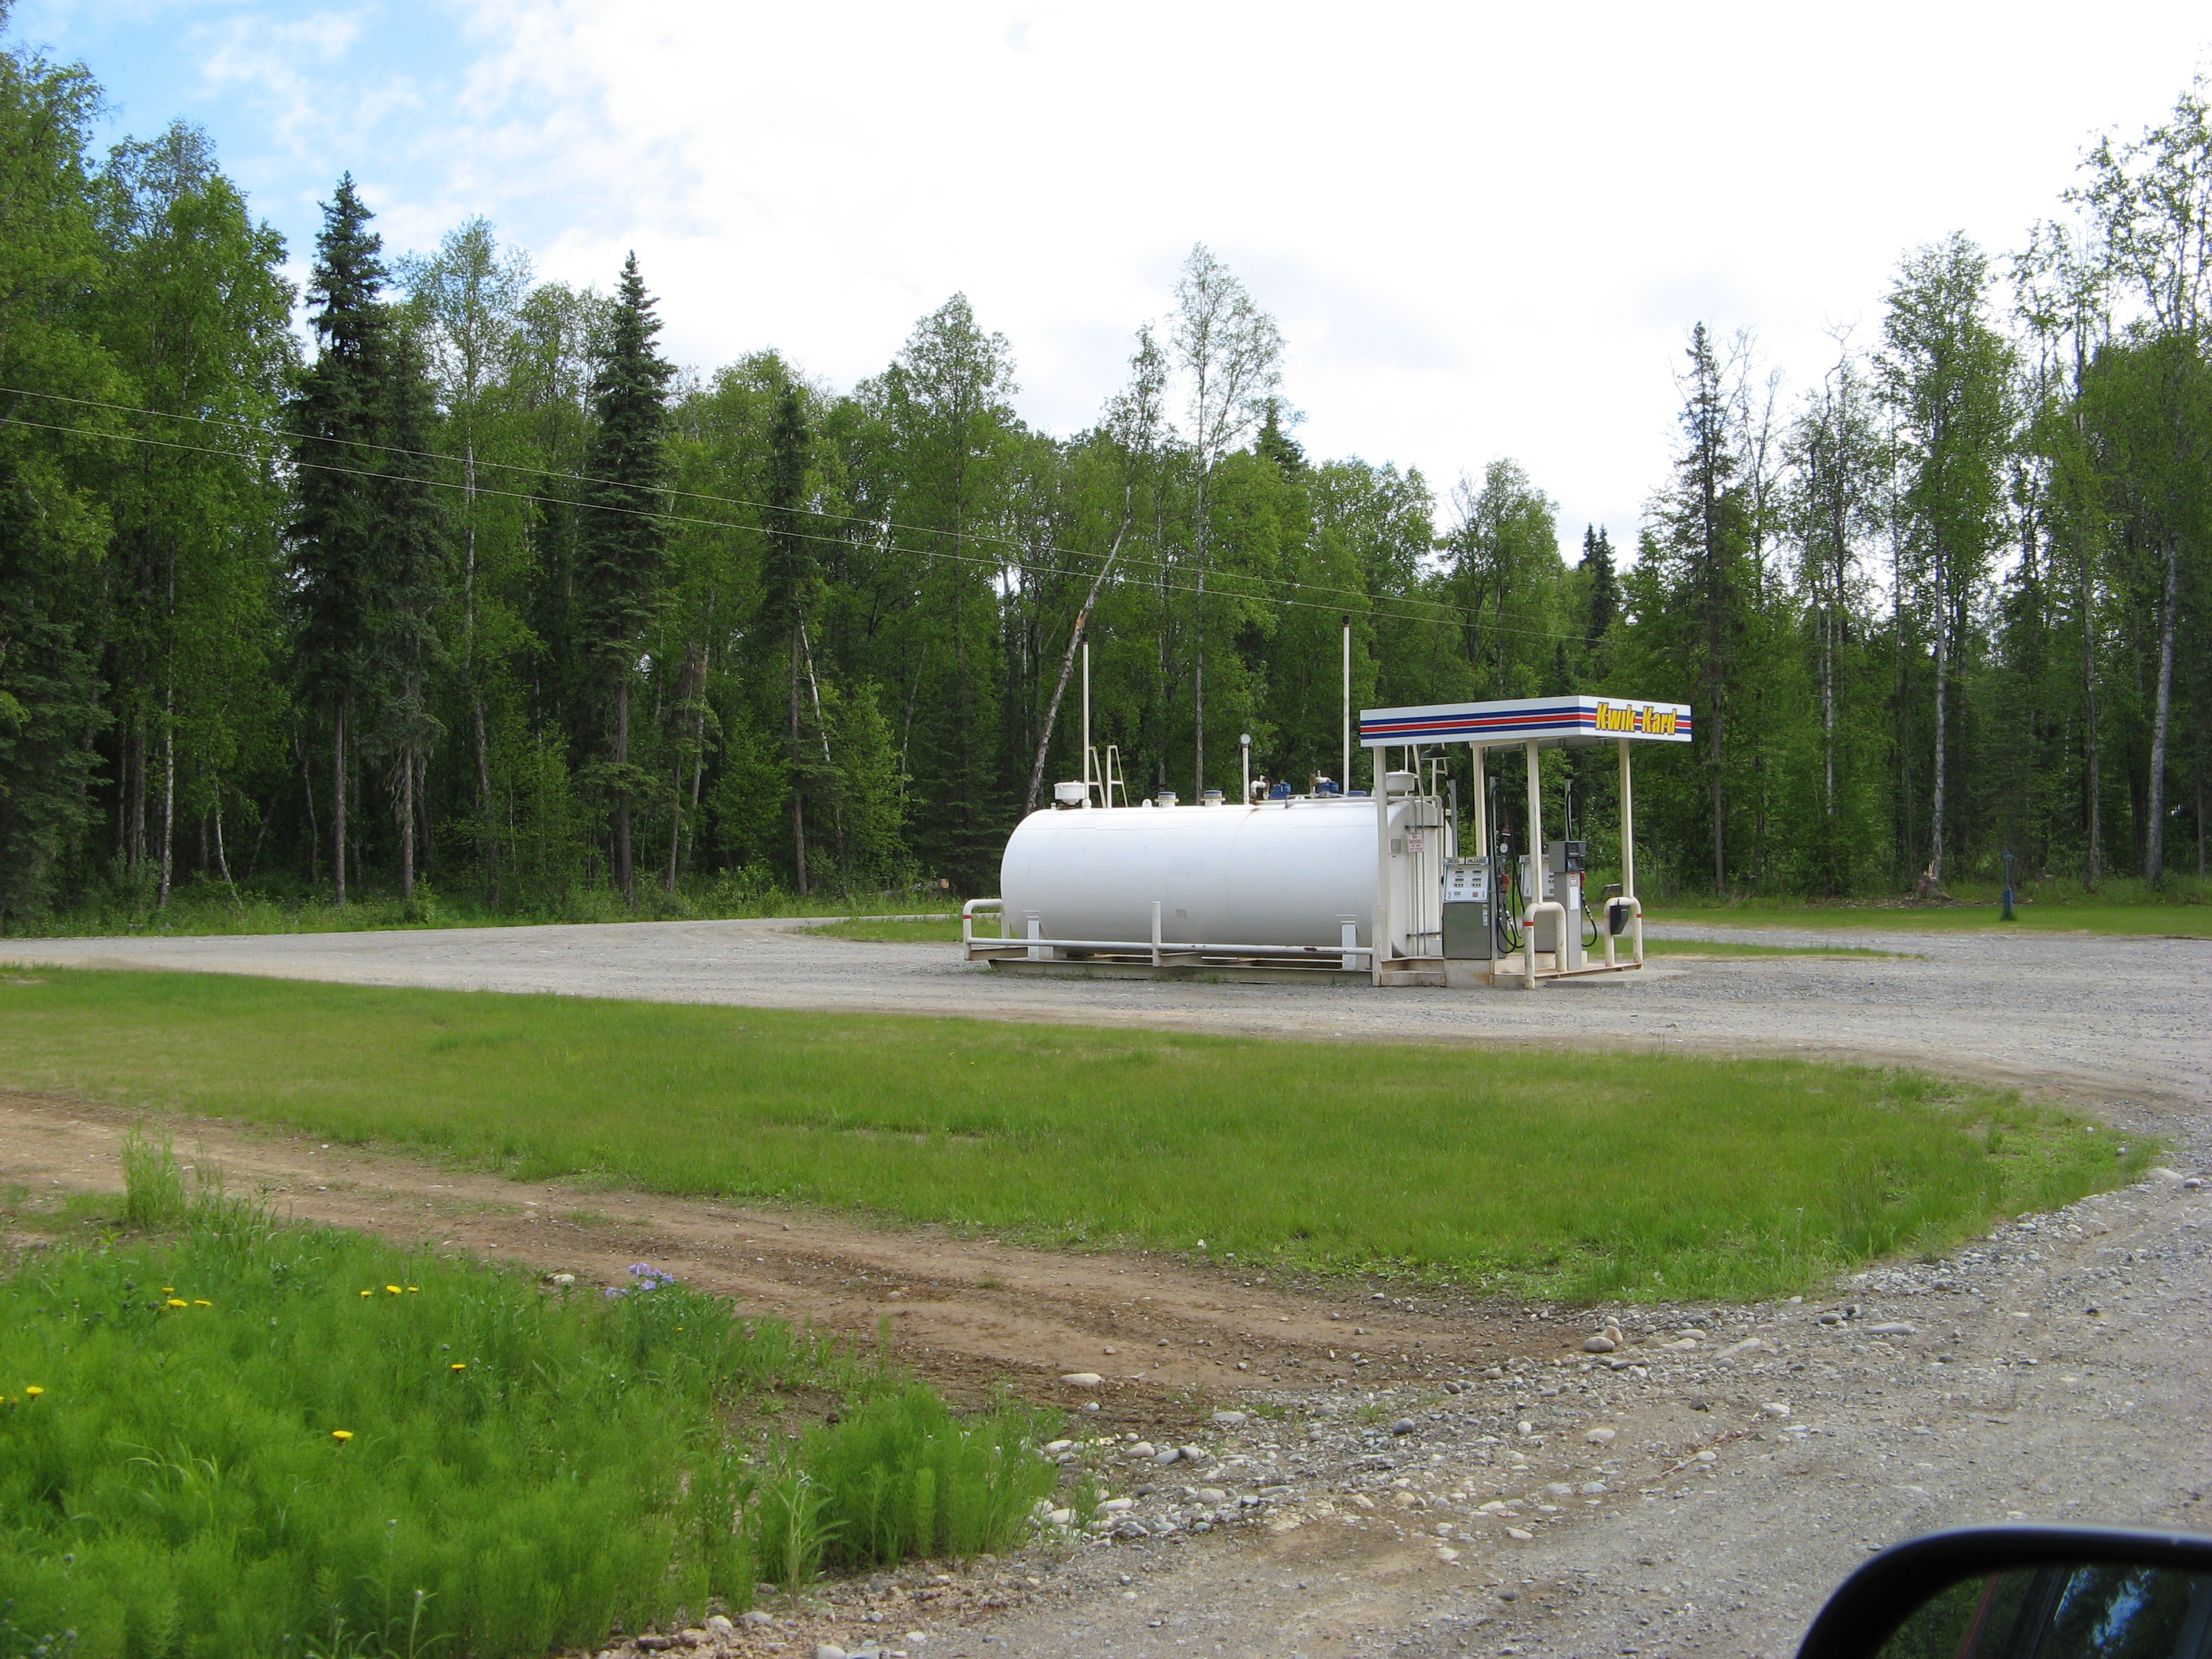 The gas station in Talkeetna, Alaska.